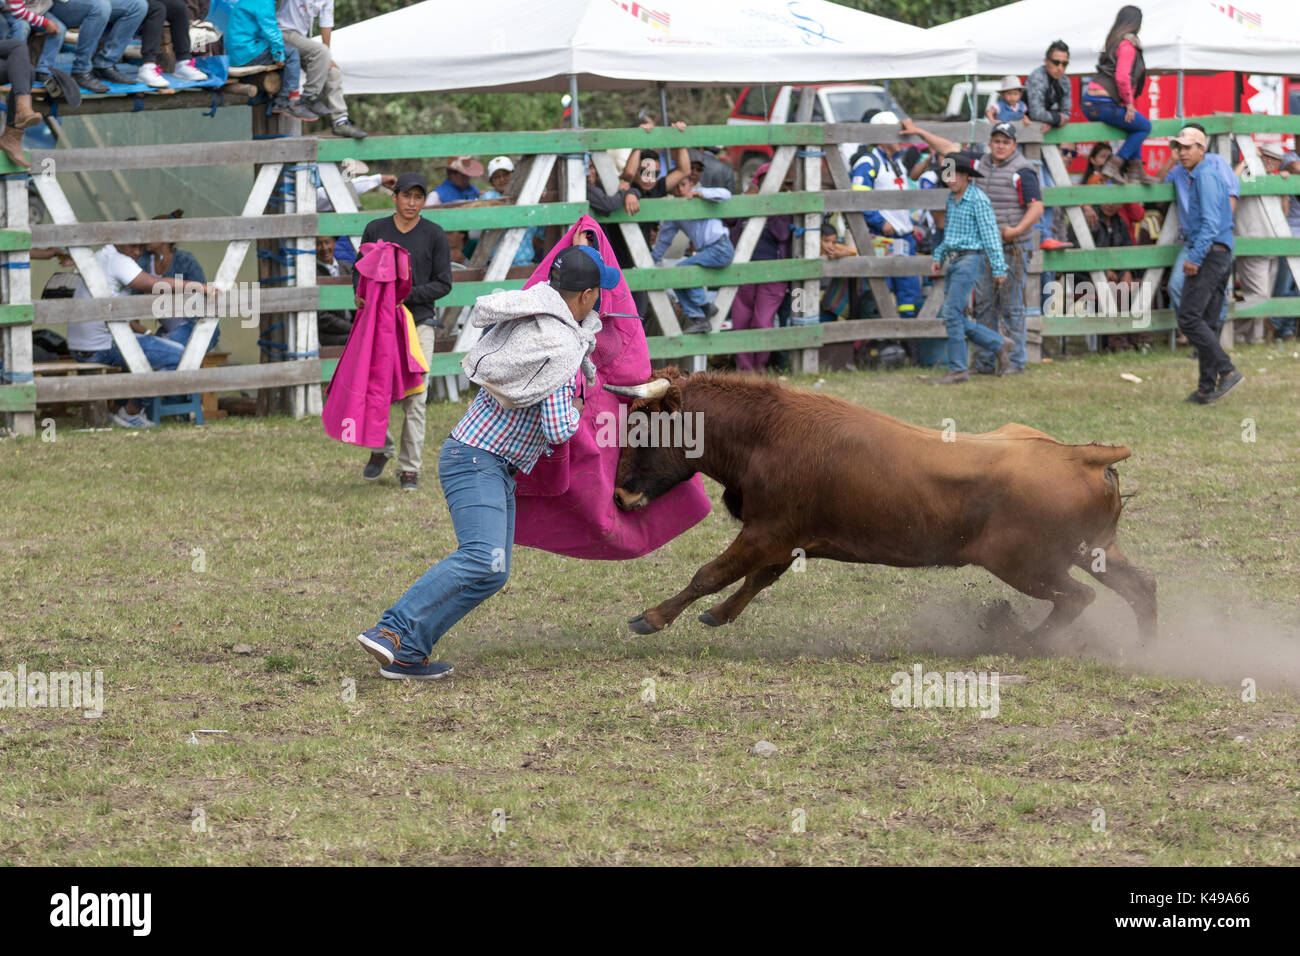 May 28, 2017 Sangolqui, Ecuador: man holding up a cape charged by a bull at a rural amateur bullfight in the Andes Stock Photo